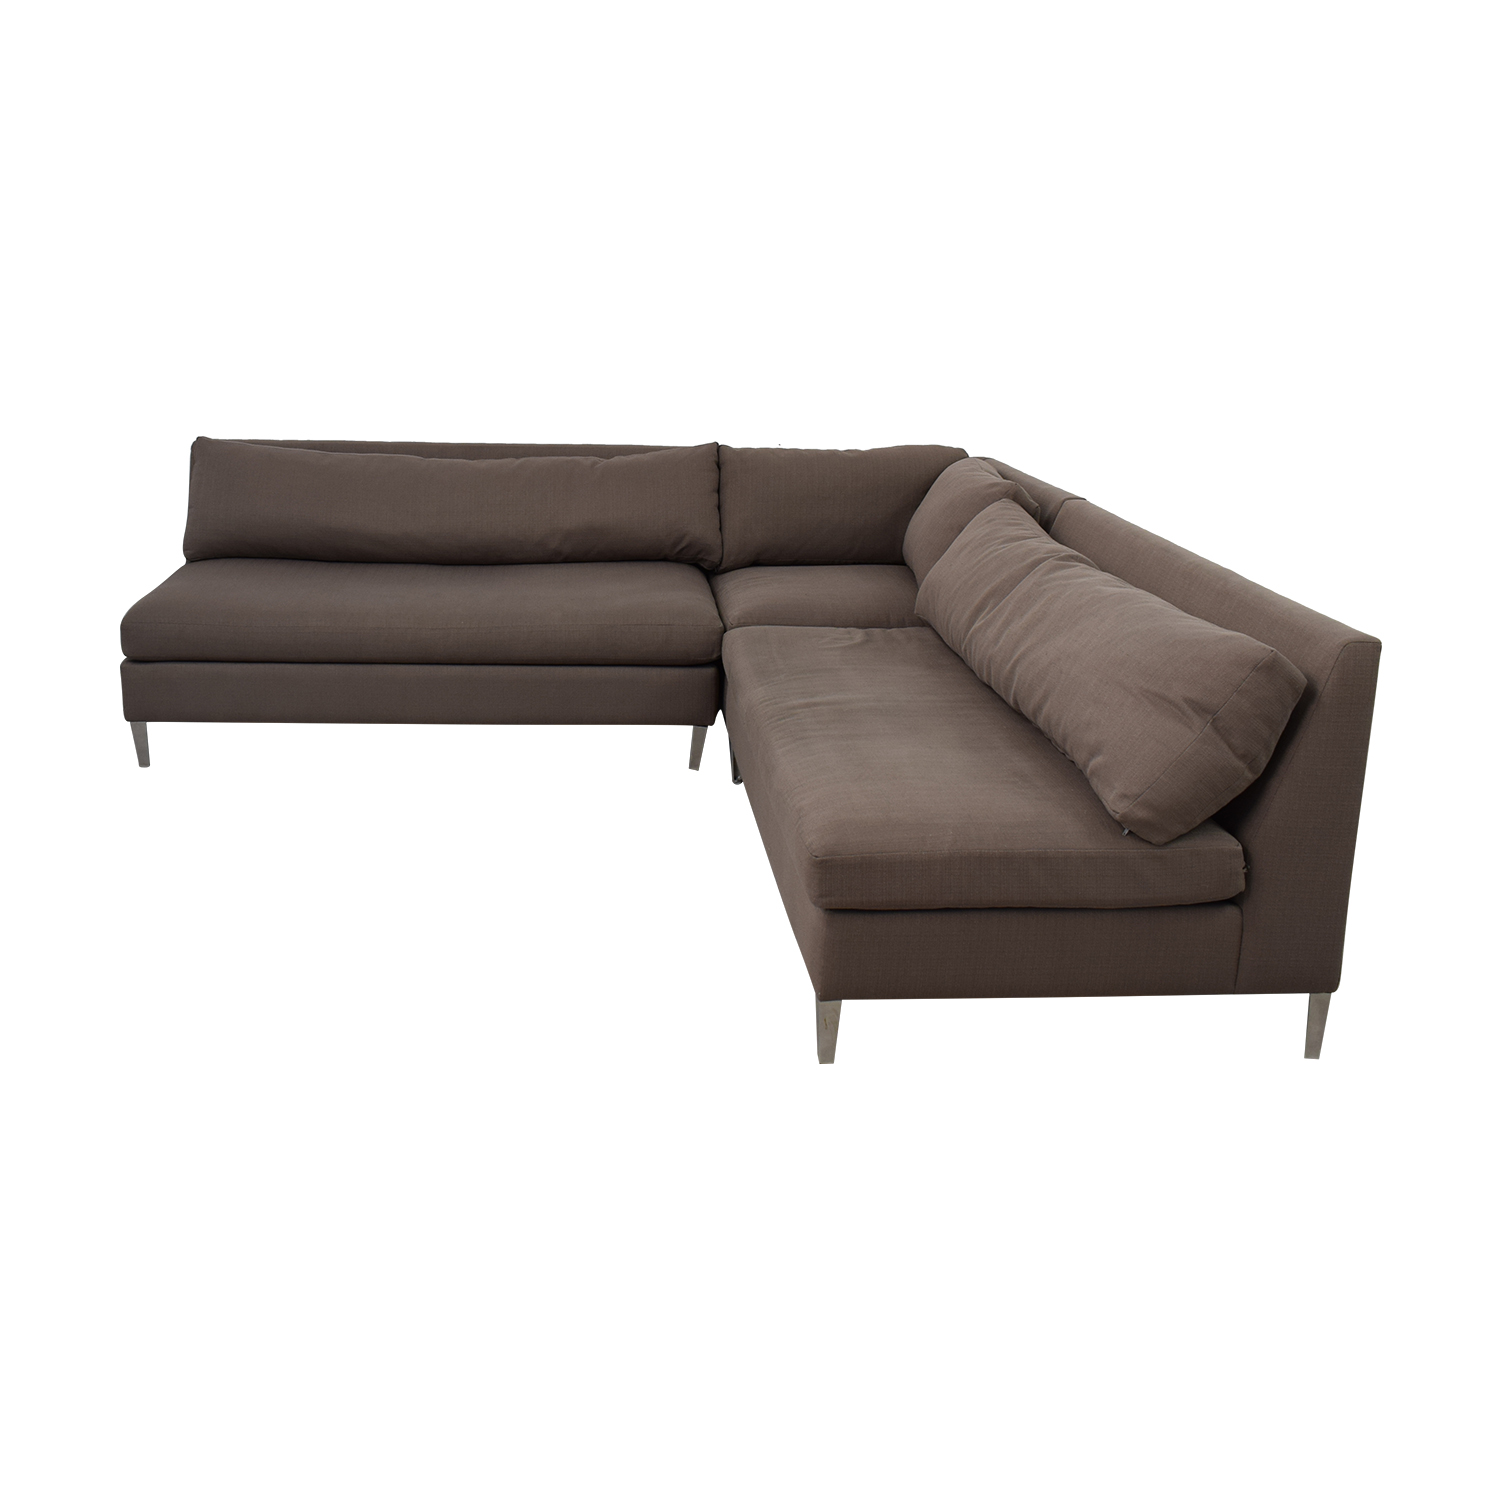 CB2 CB2 Cielo Sofa Sectional coupon